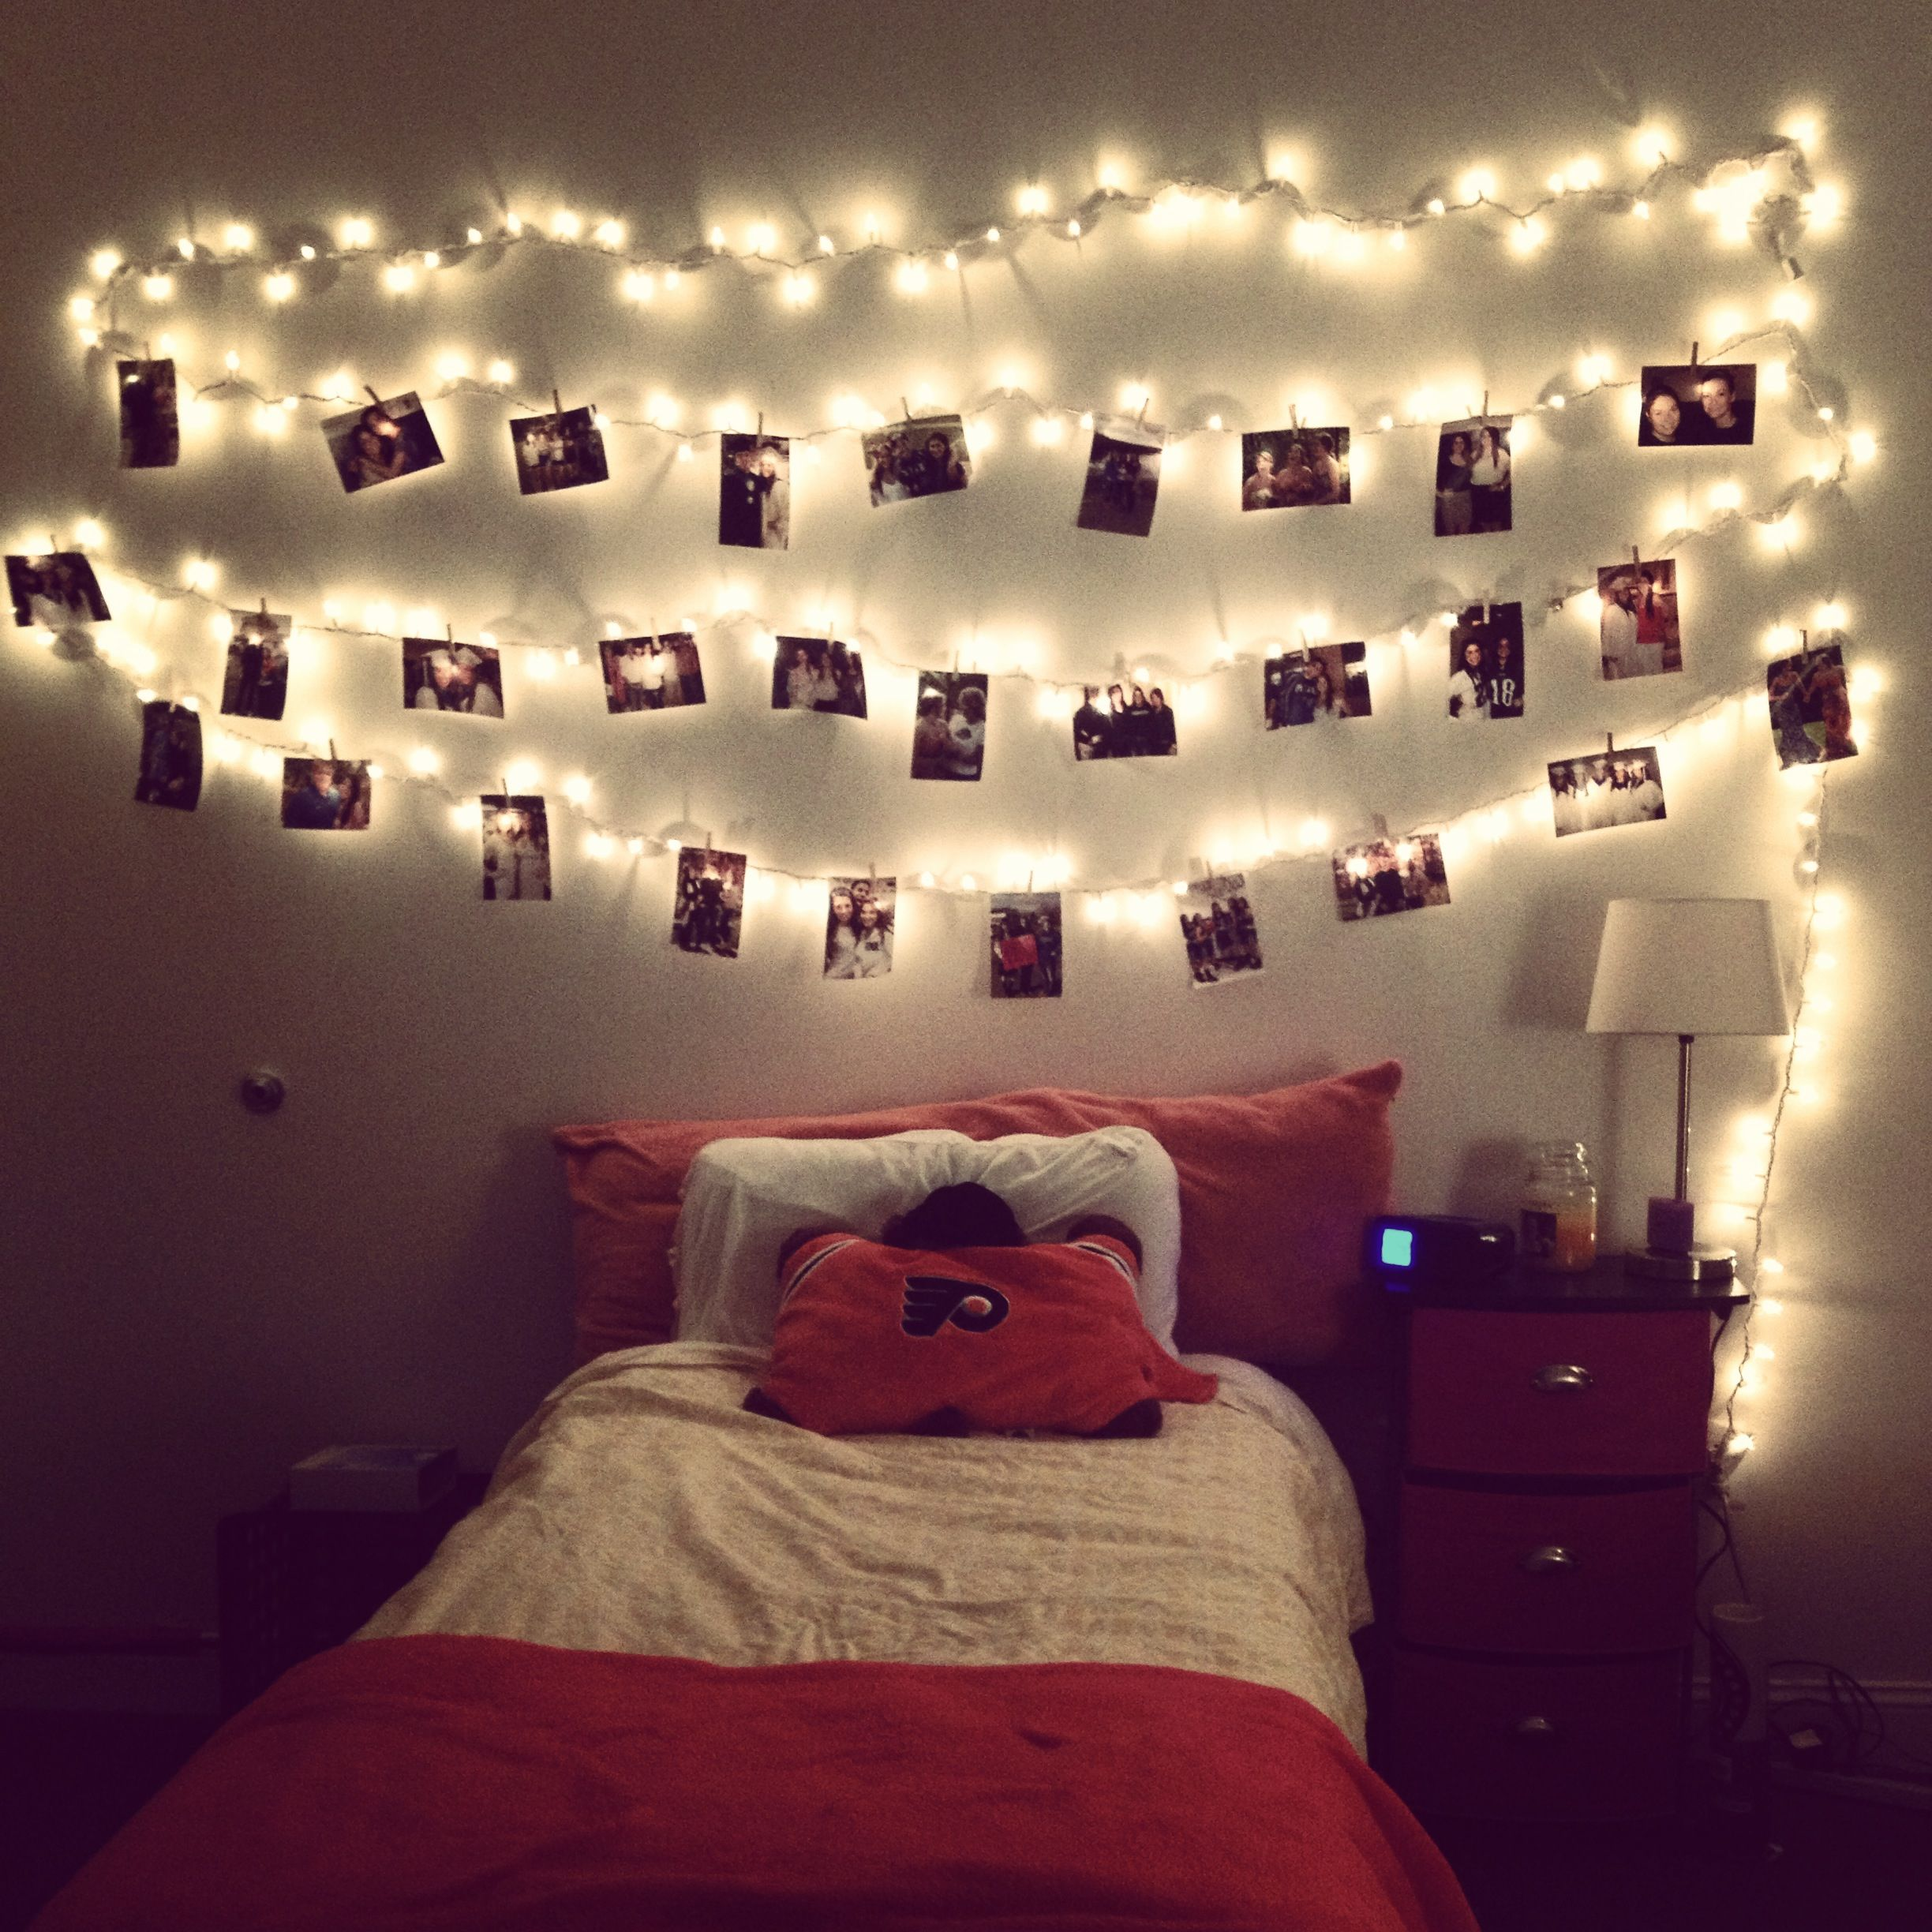 Hang Lights And Cute Pictures With Clothes Pins Love This Instead Of Like A Gallery Wall For